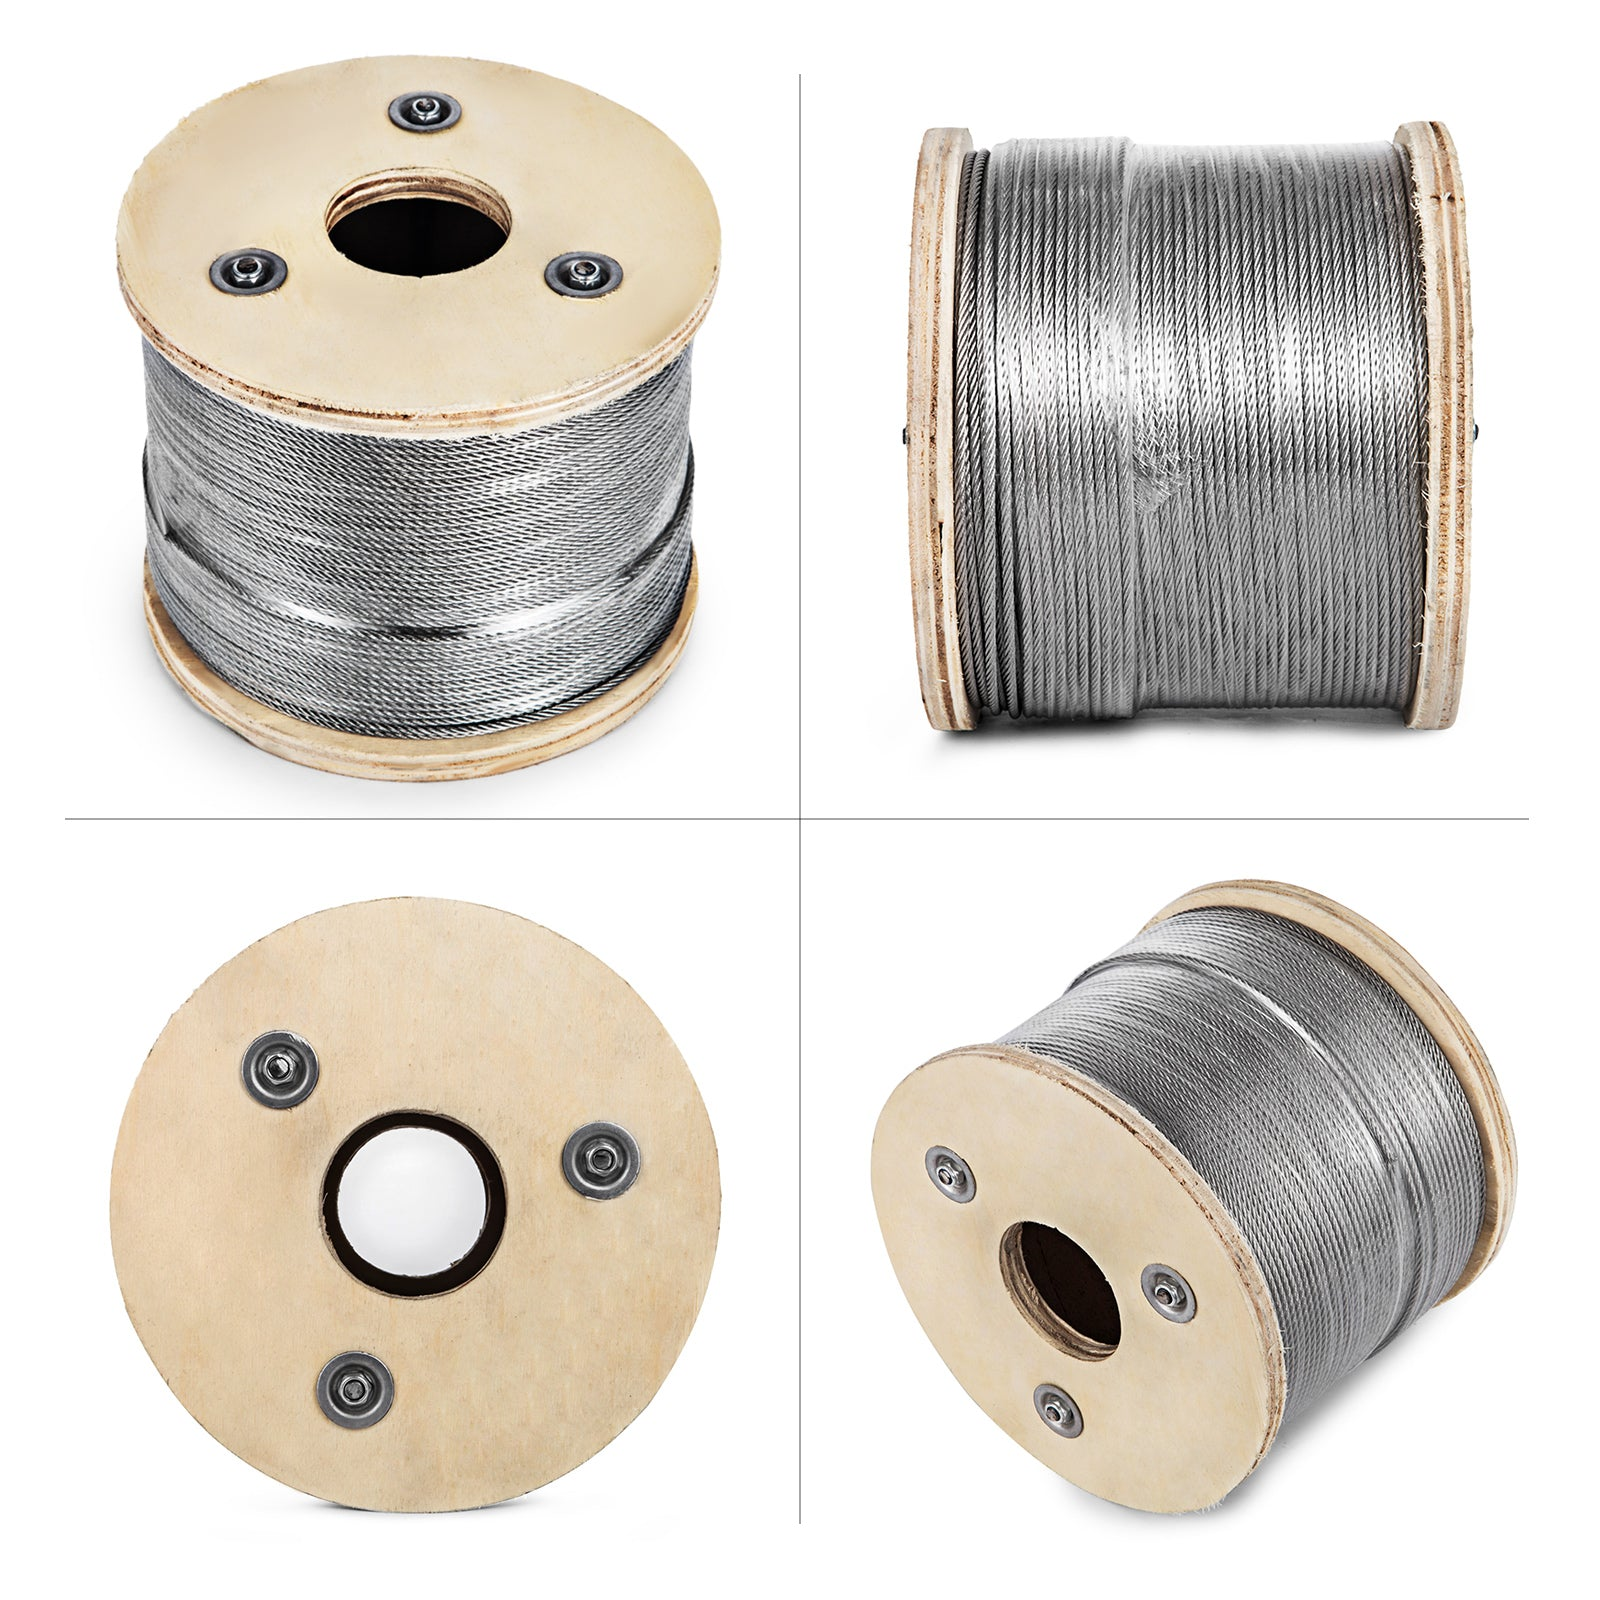 "1/8"" 7x7 Stainless Steel Cable Wire Rope Grade 304 (1000 Feet)"